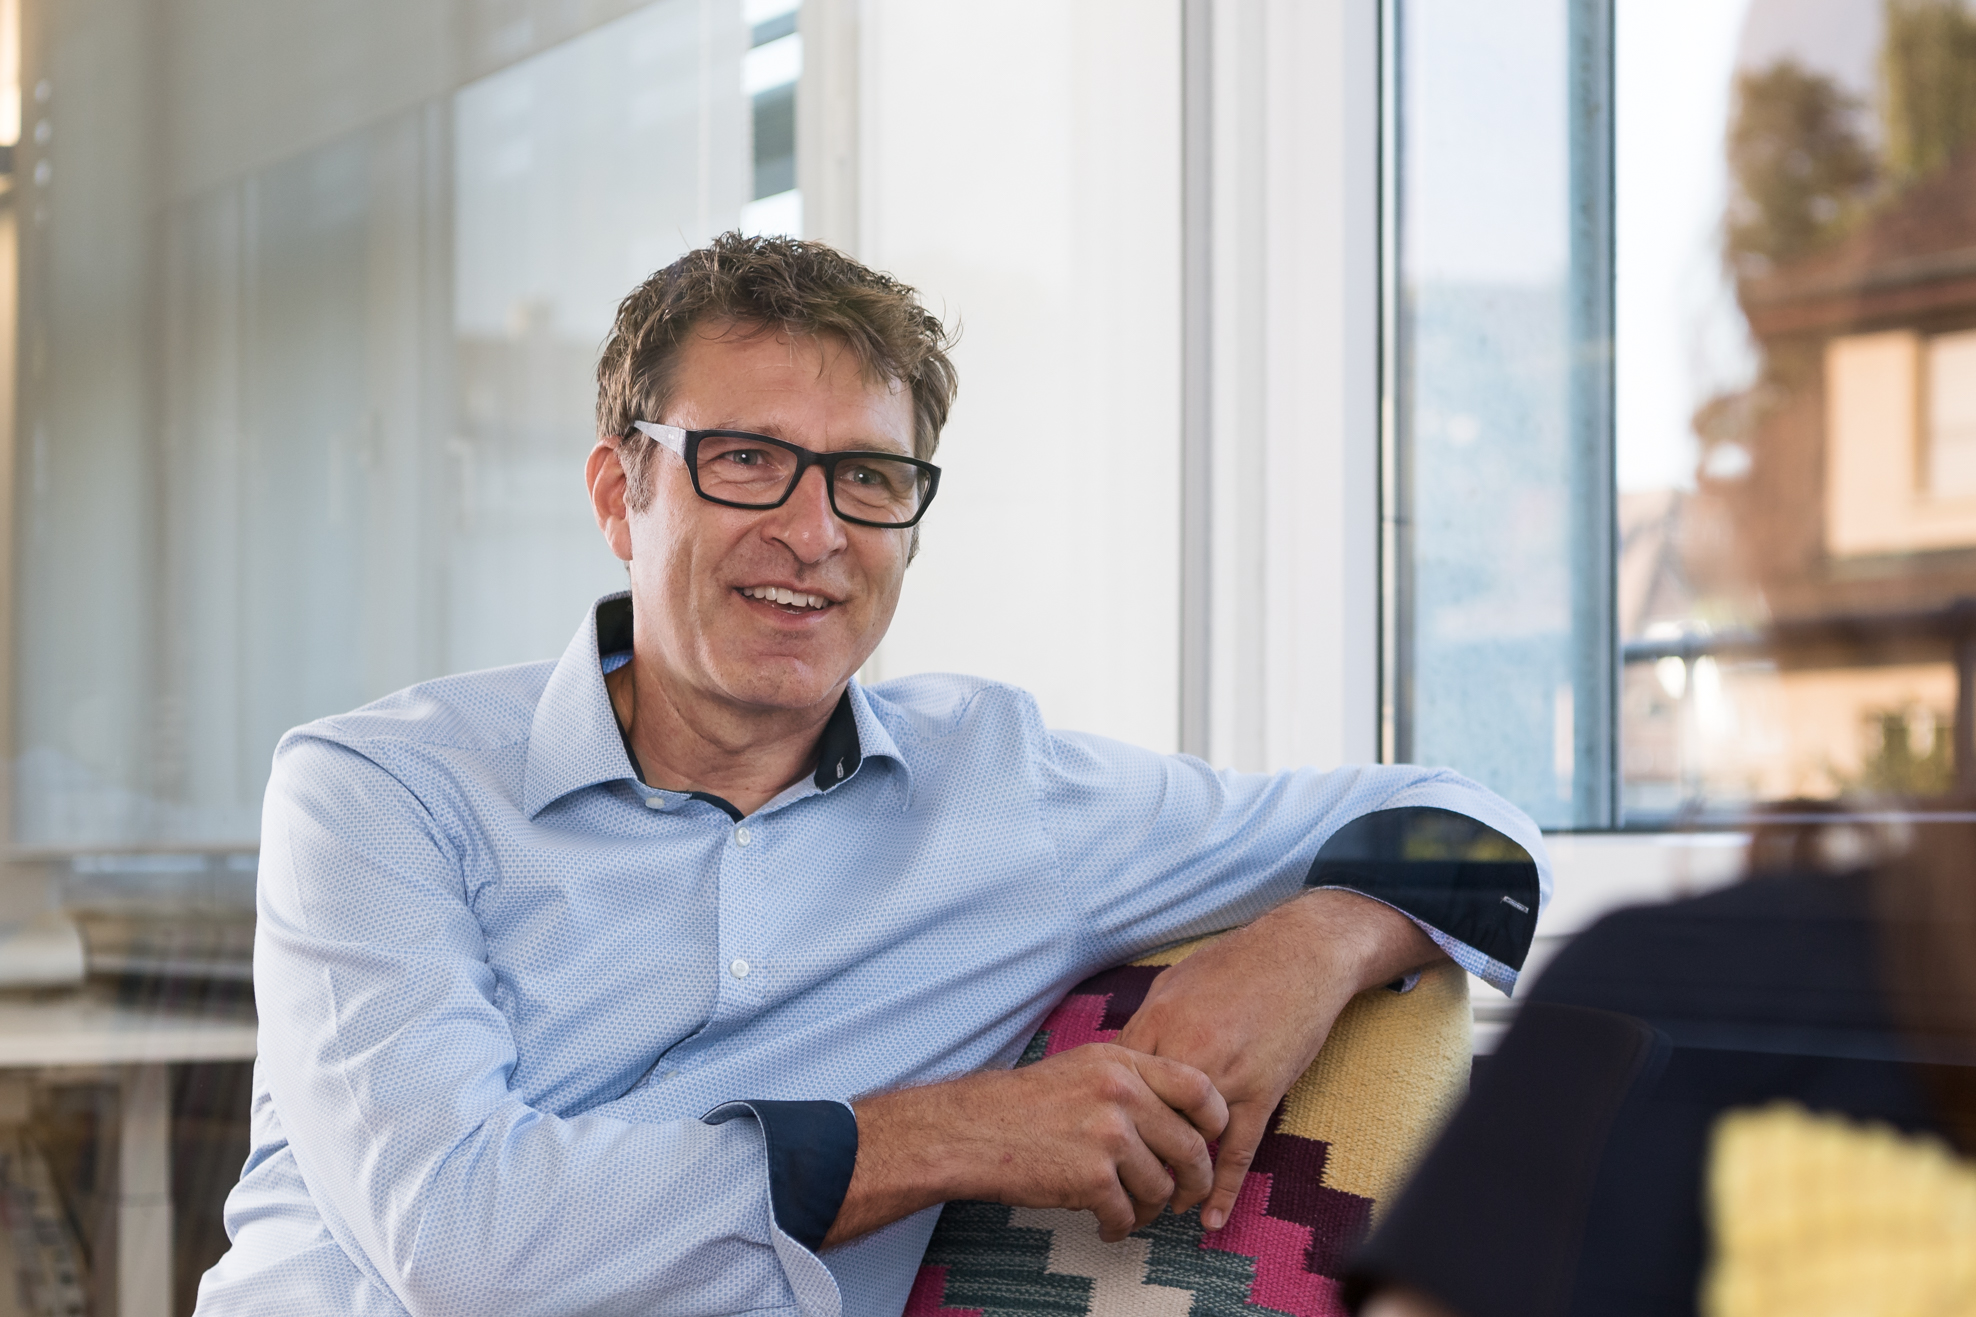 Holger Ebel - Ihr Führungscoach in Zürich (leadership coaching)